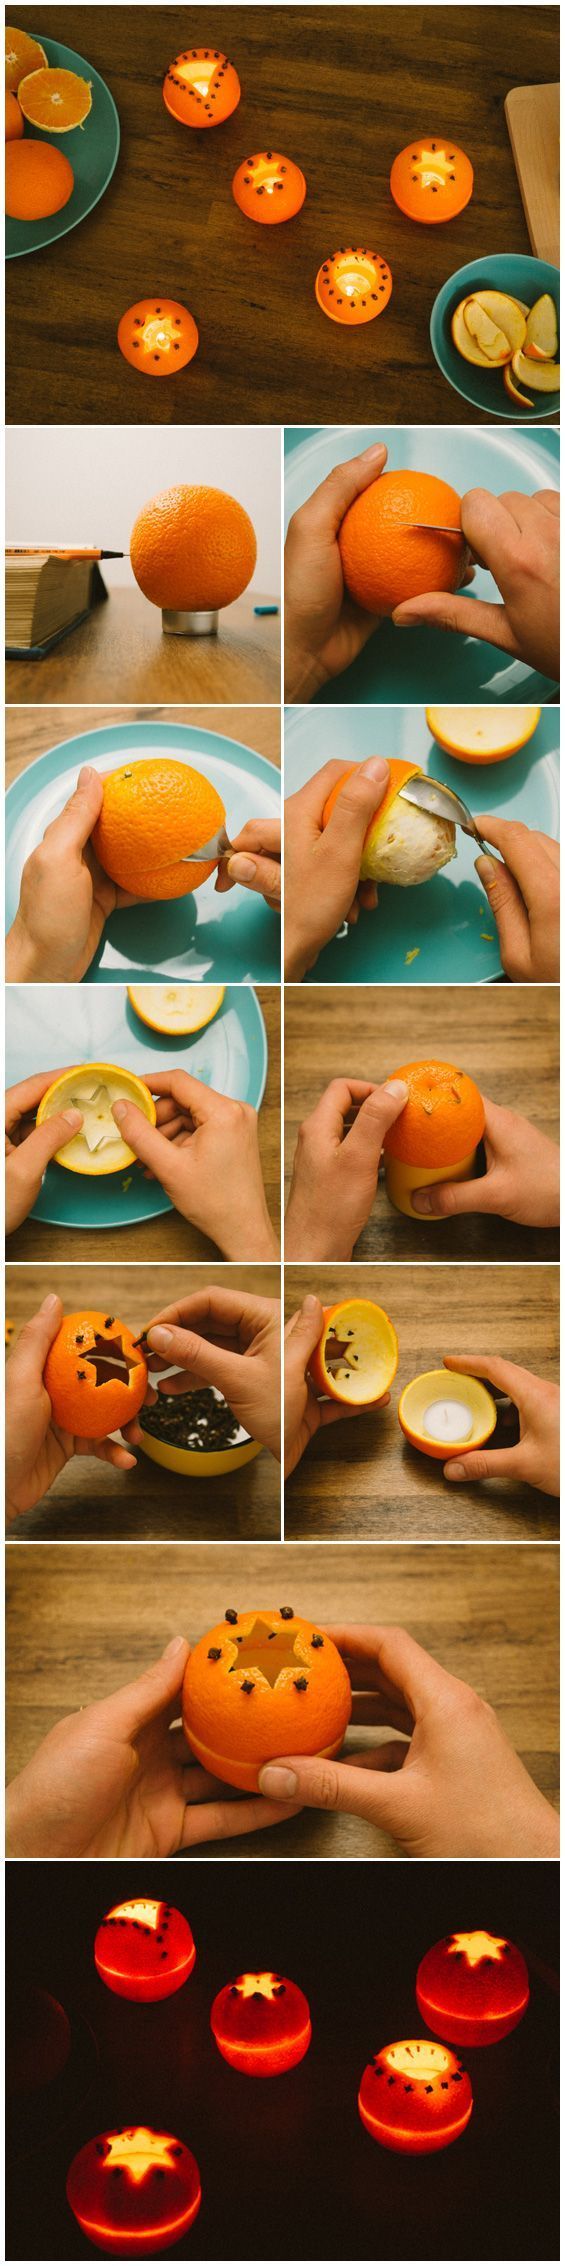 DIY candle holders made from oranges. Would be great for summer parties and citronella candles!